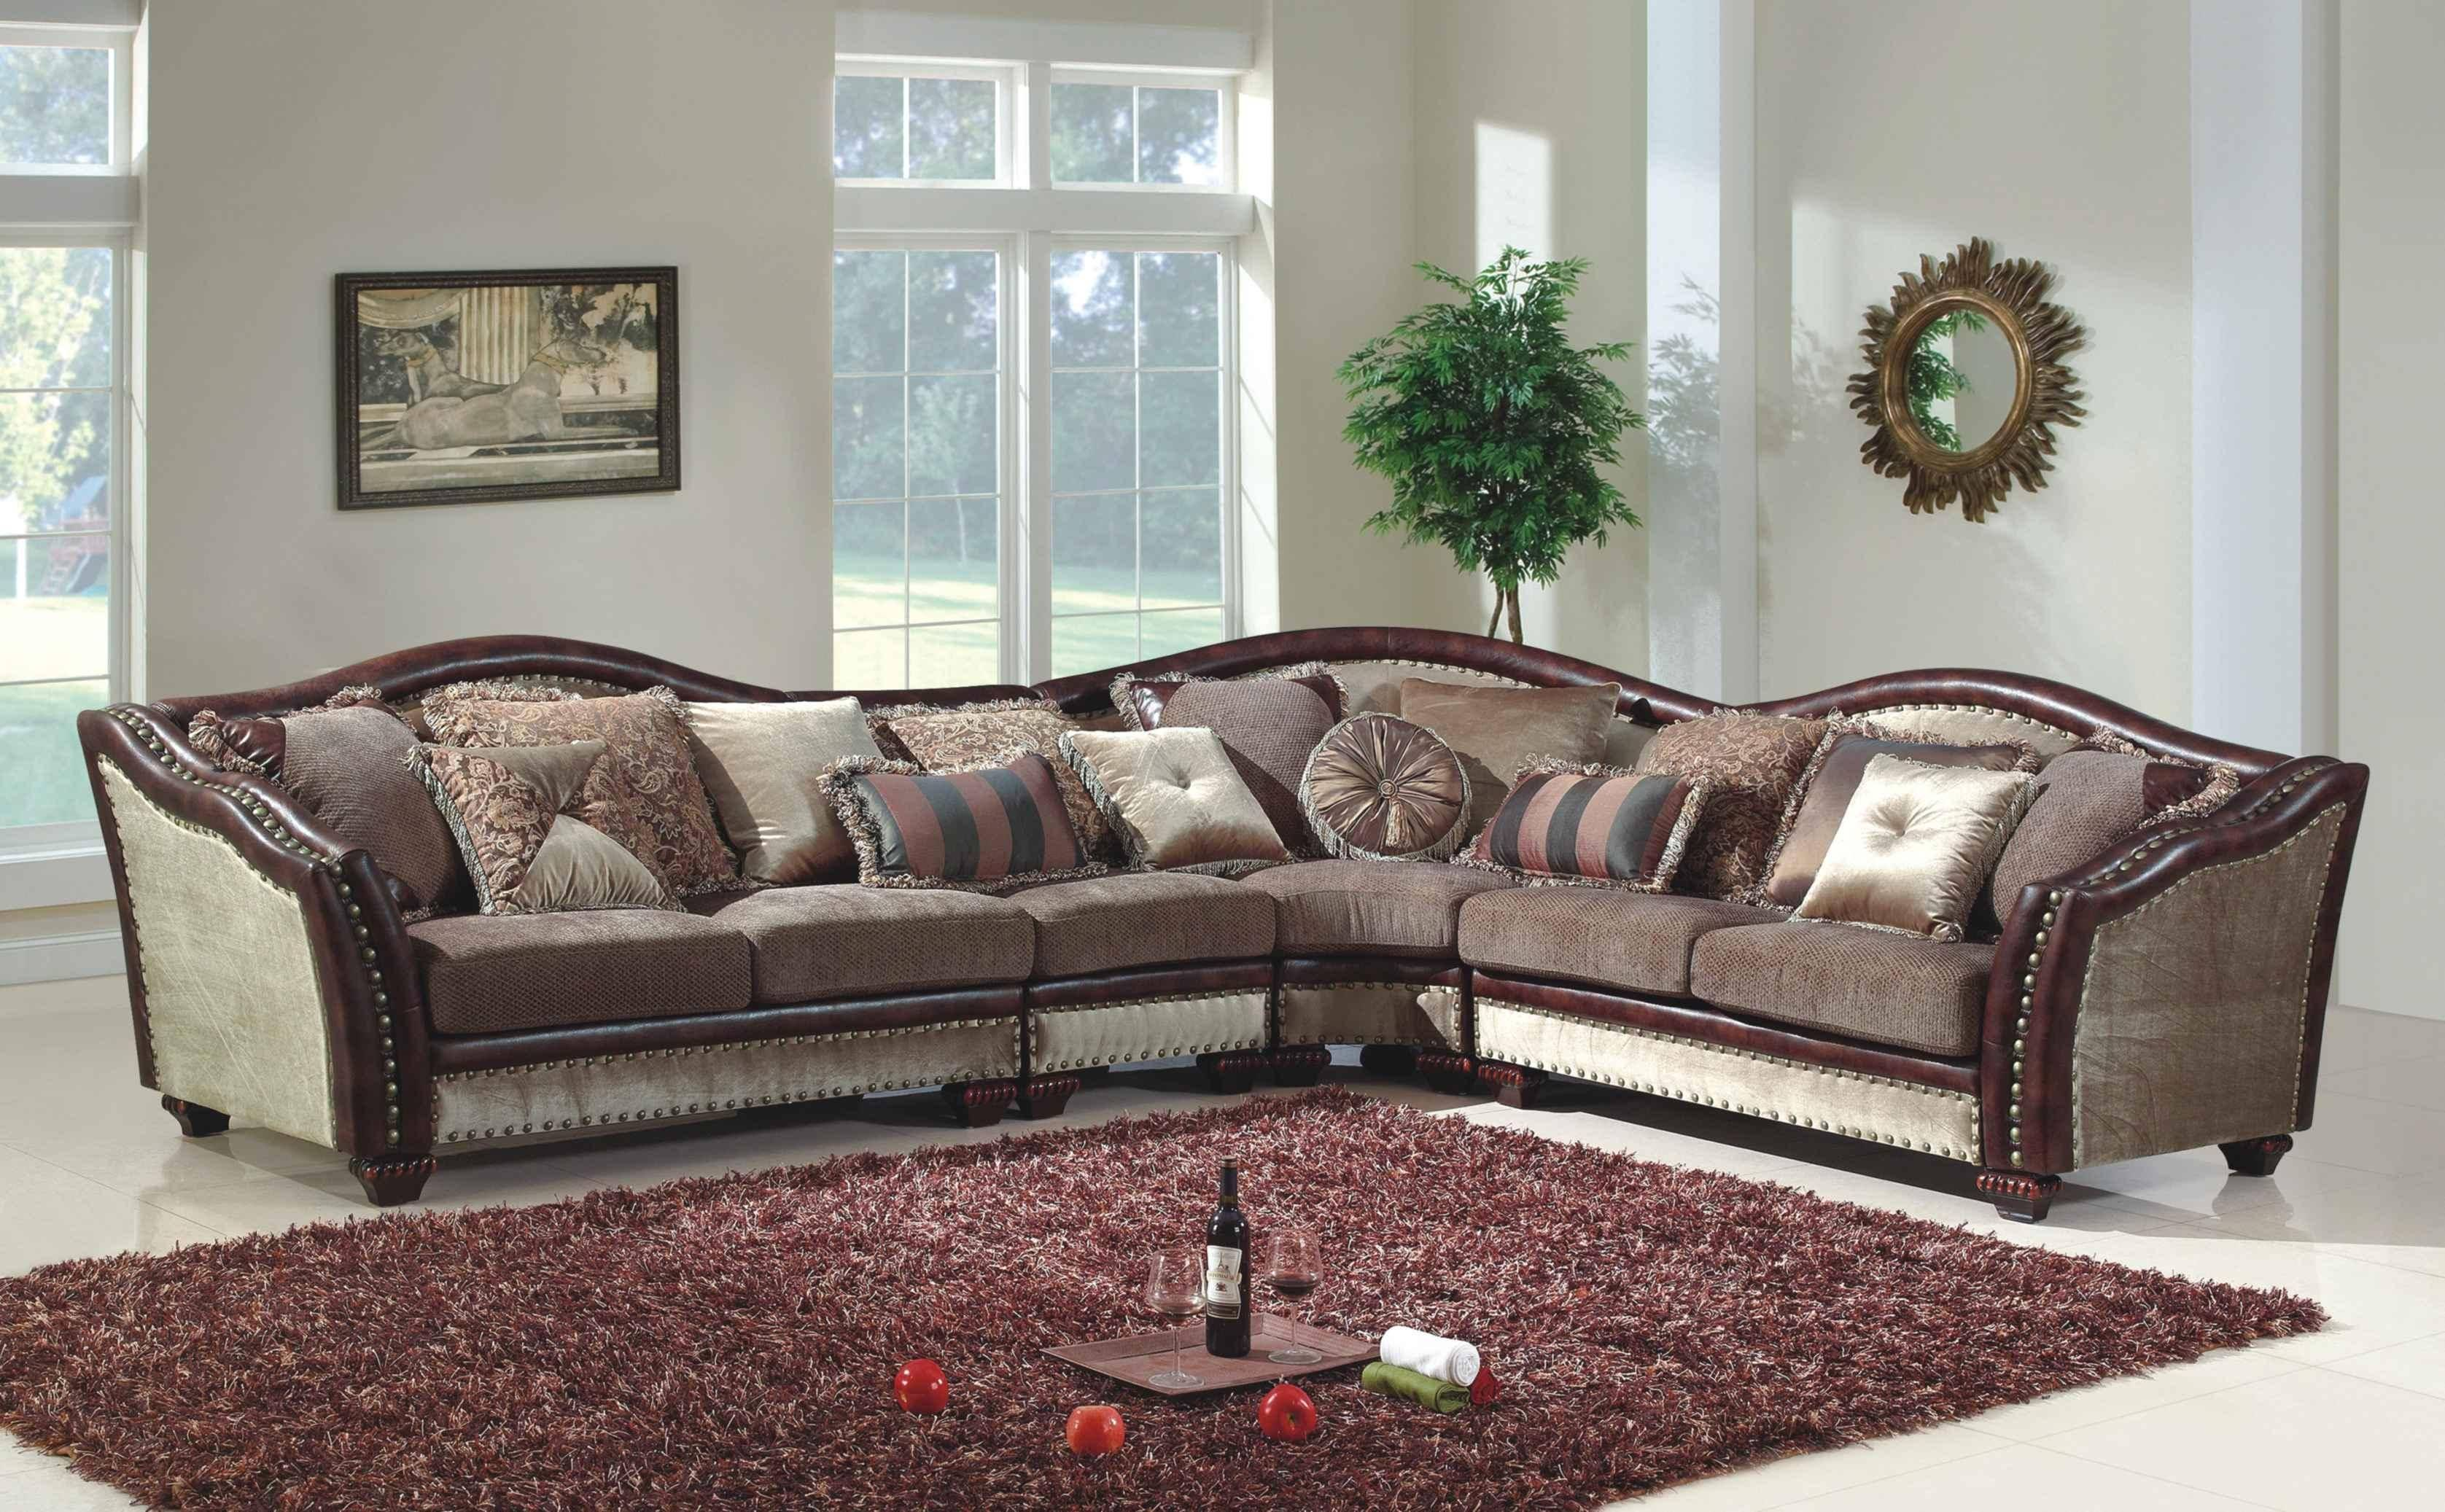 Mcferran sf2780 traditional beige brown chenille fabric living room sectional sofa reviews sf2780 sectional